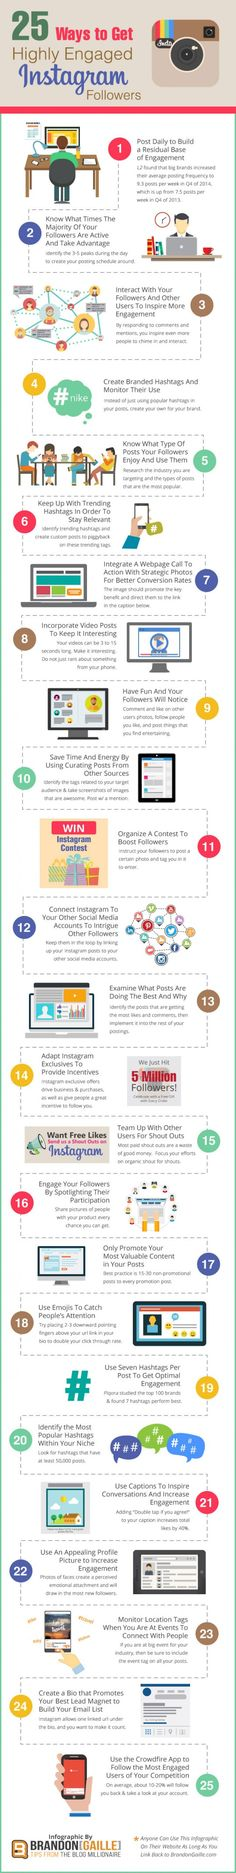 25 Top Instagram Marketing Tips from the Pros http://www.top-sales-results.com/